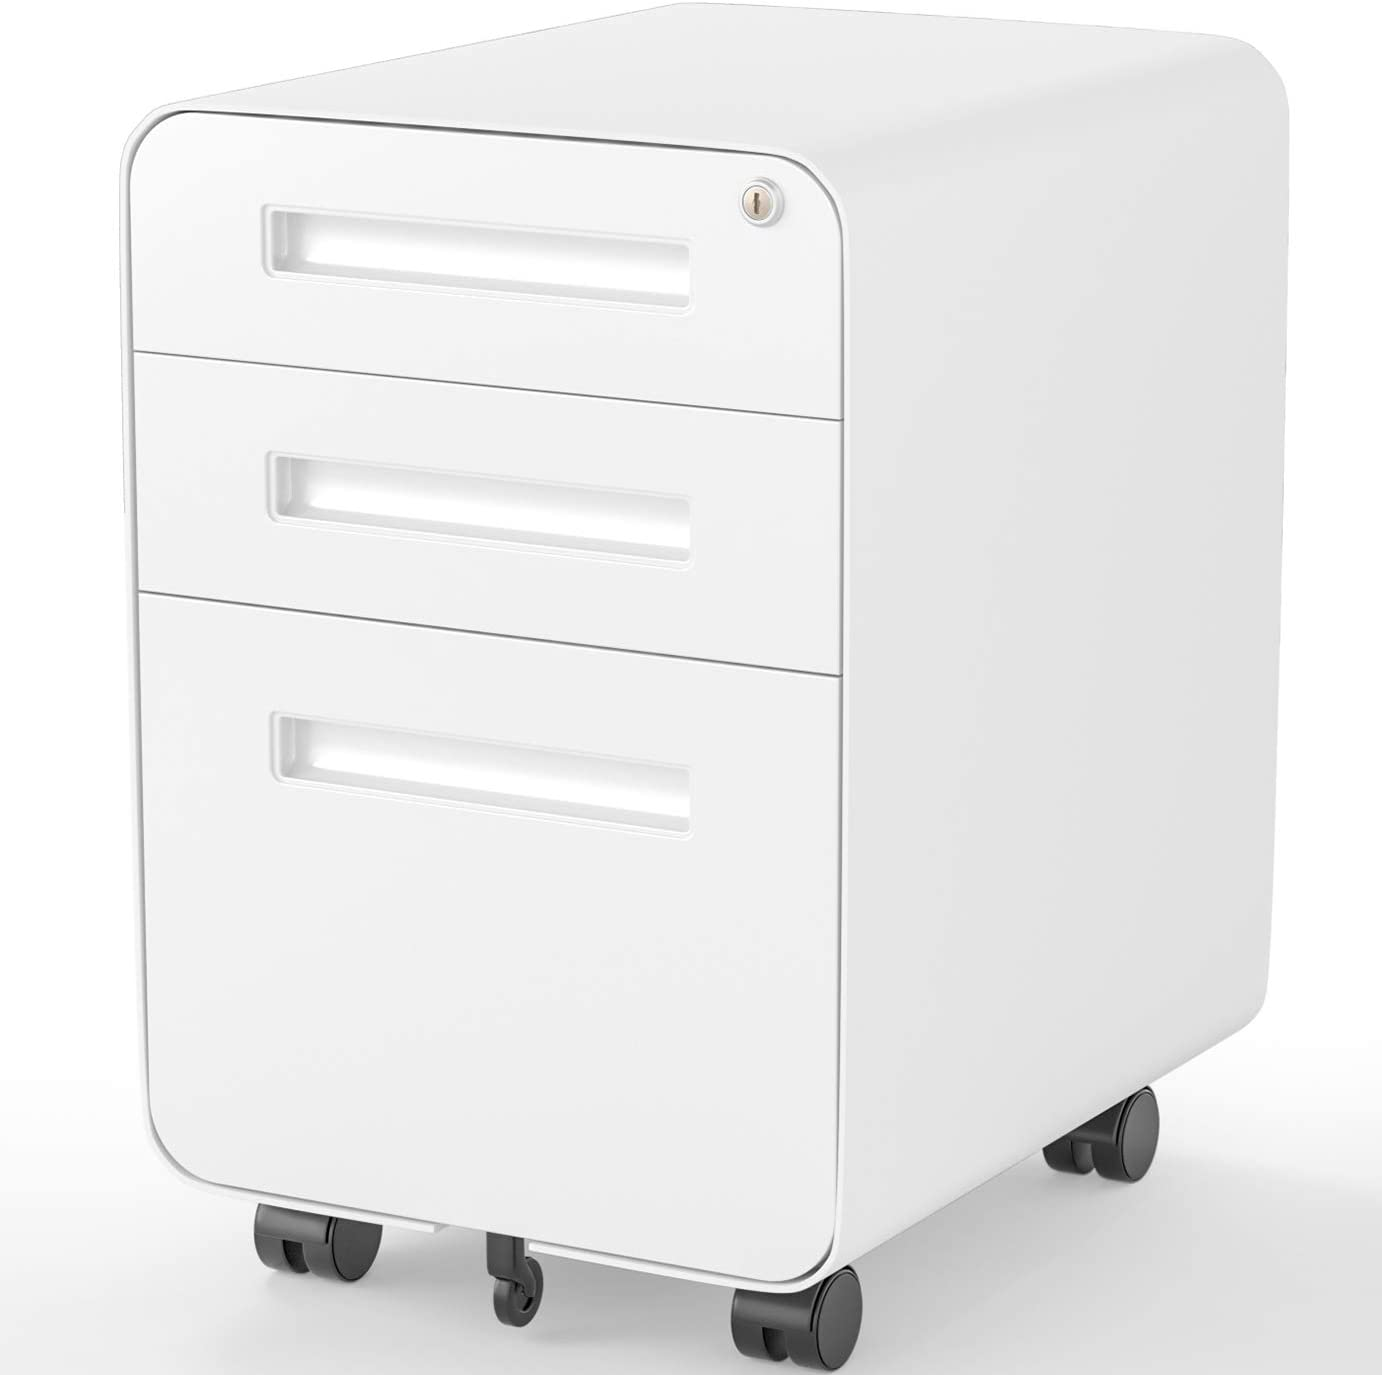 FORSTEEL File Cabinet, 3 Drawers Mobile Filing Cabinet with Lock, Steel File Cabinet Legal/A4 Size, Fully Assembled with Anti-tilt Setting for Home Office, Round Corner White